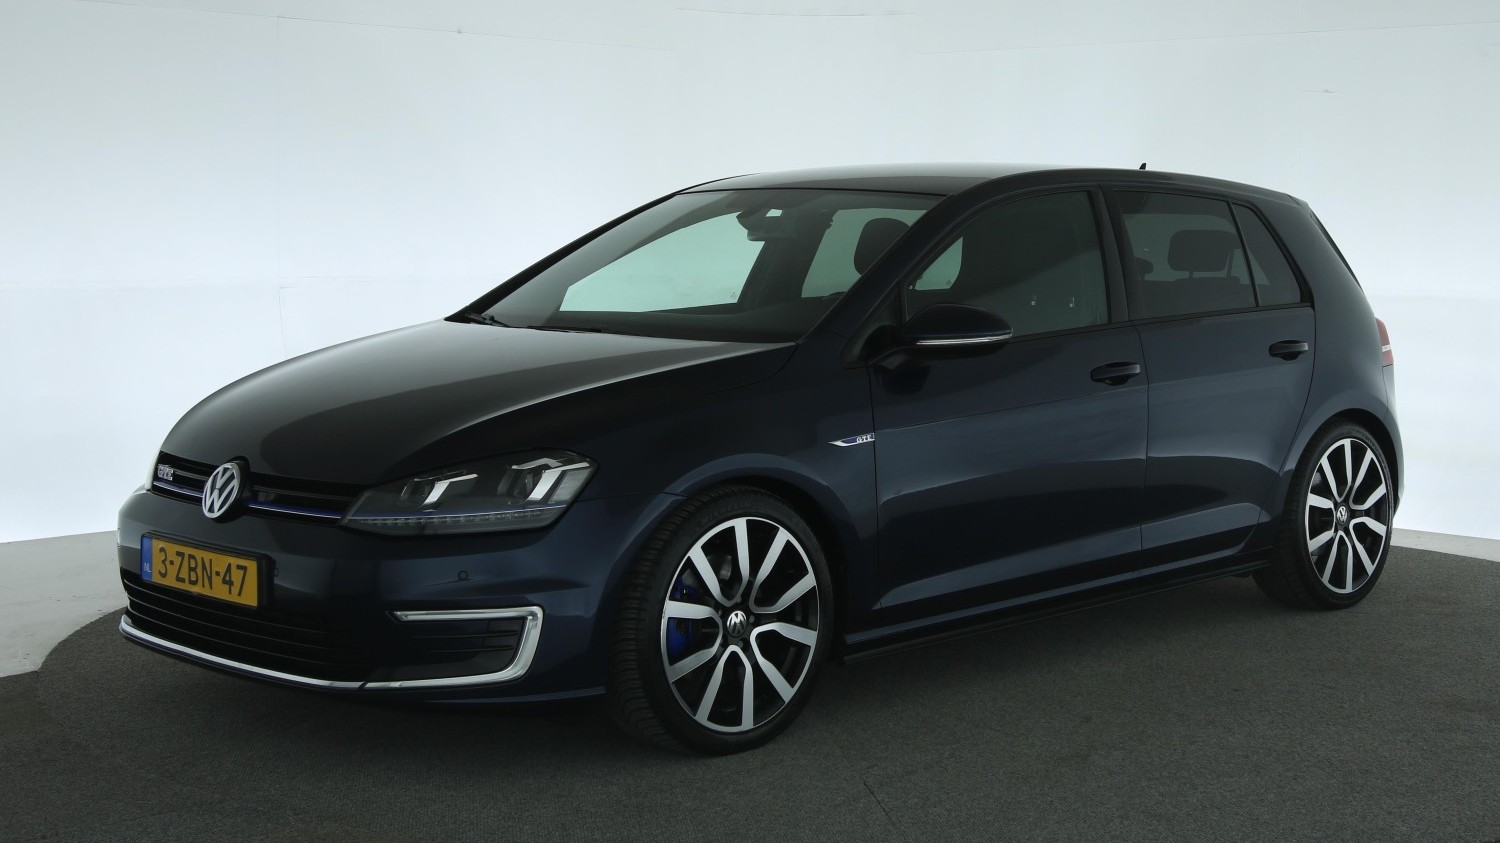 Volkswagen Golf Hatchback 2014 3-ZBN-47 1